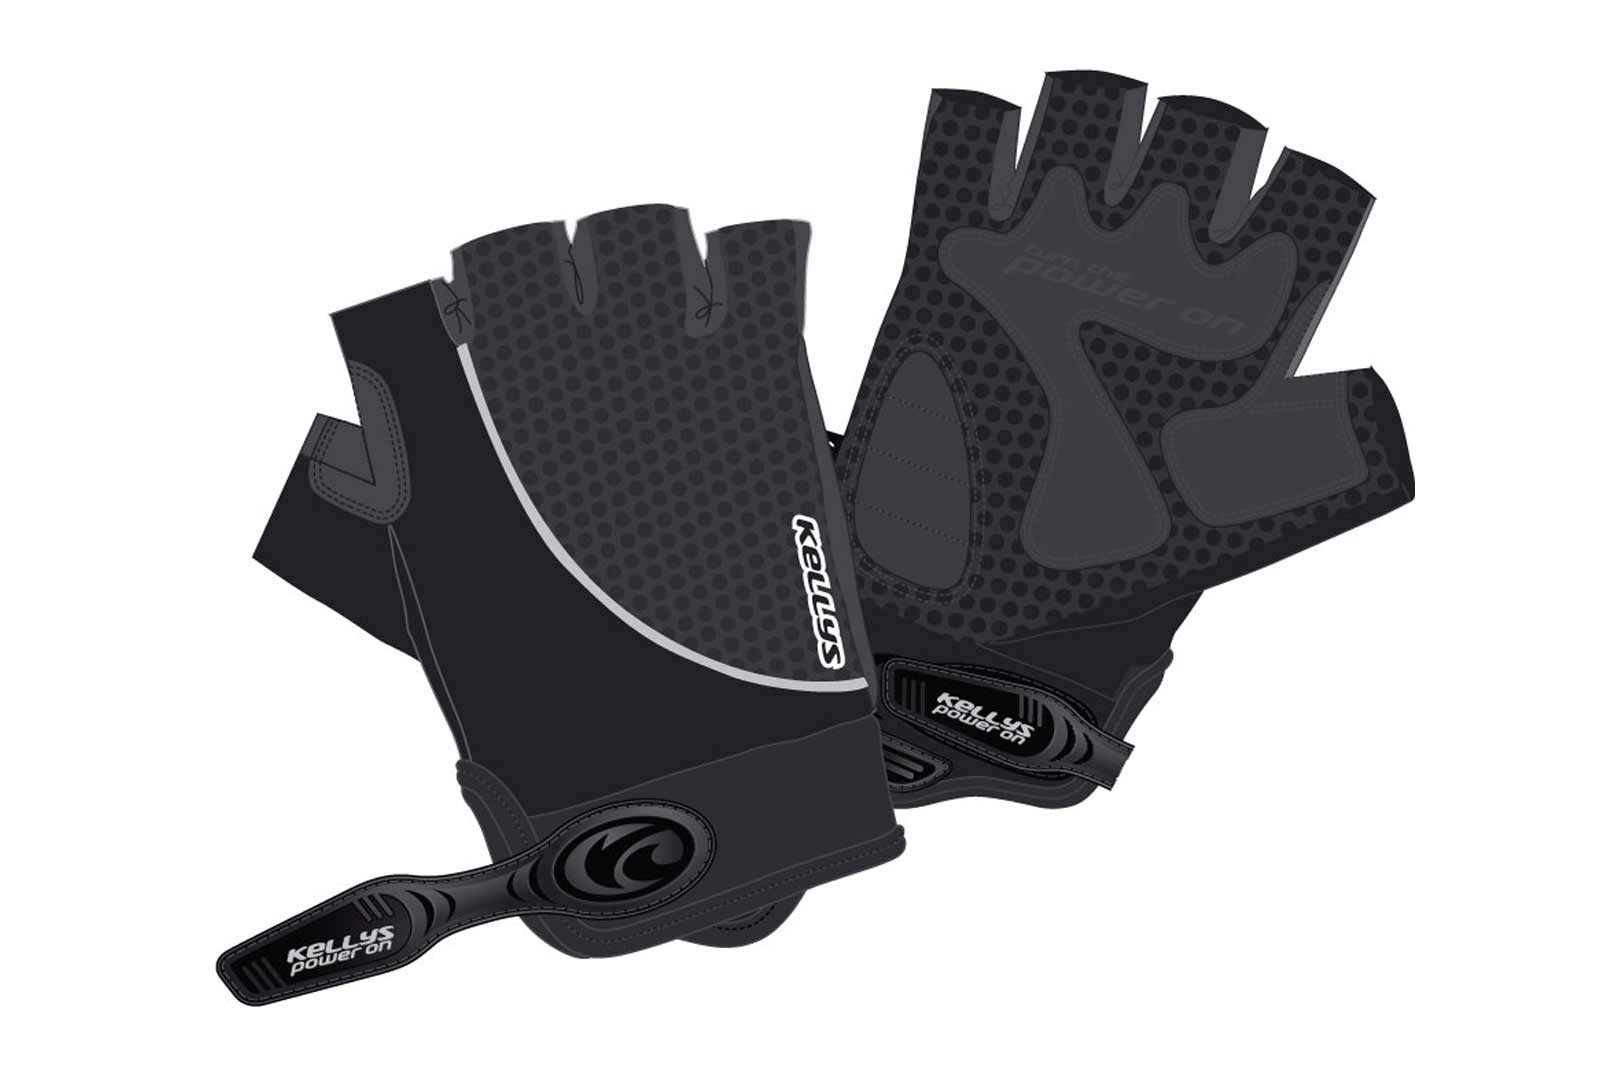 Handschuhe SEASON black L - Mile-Multisport